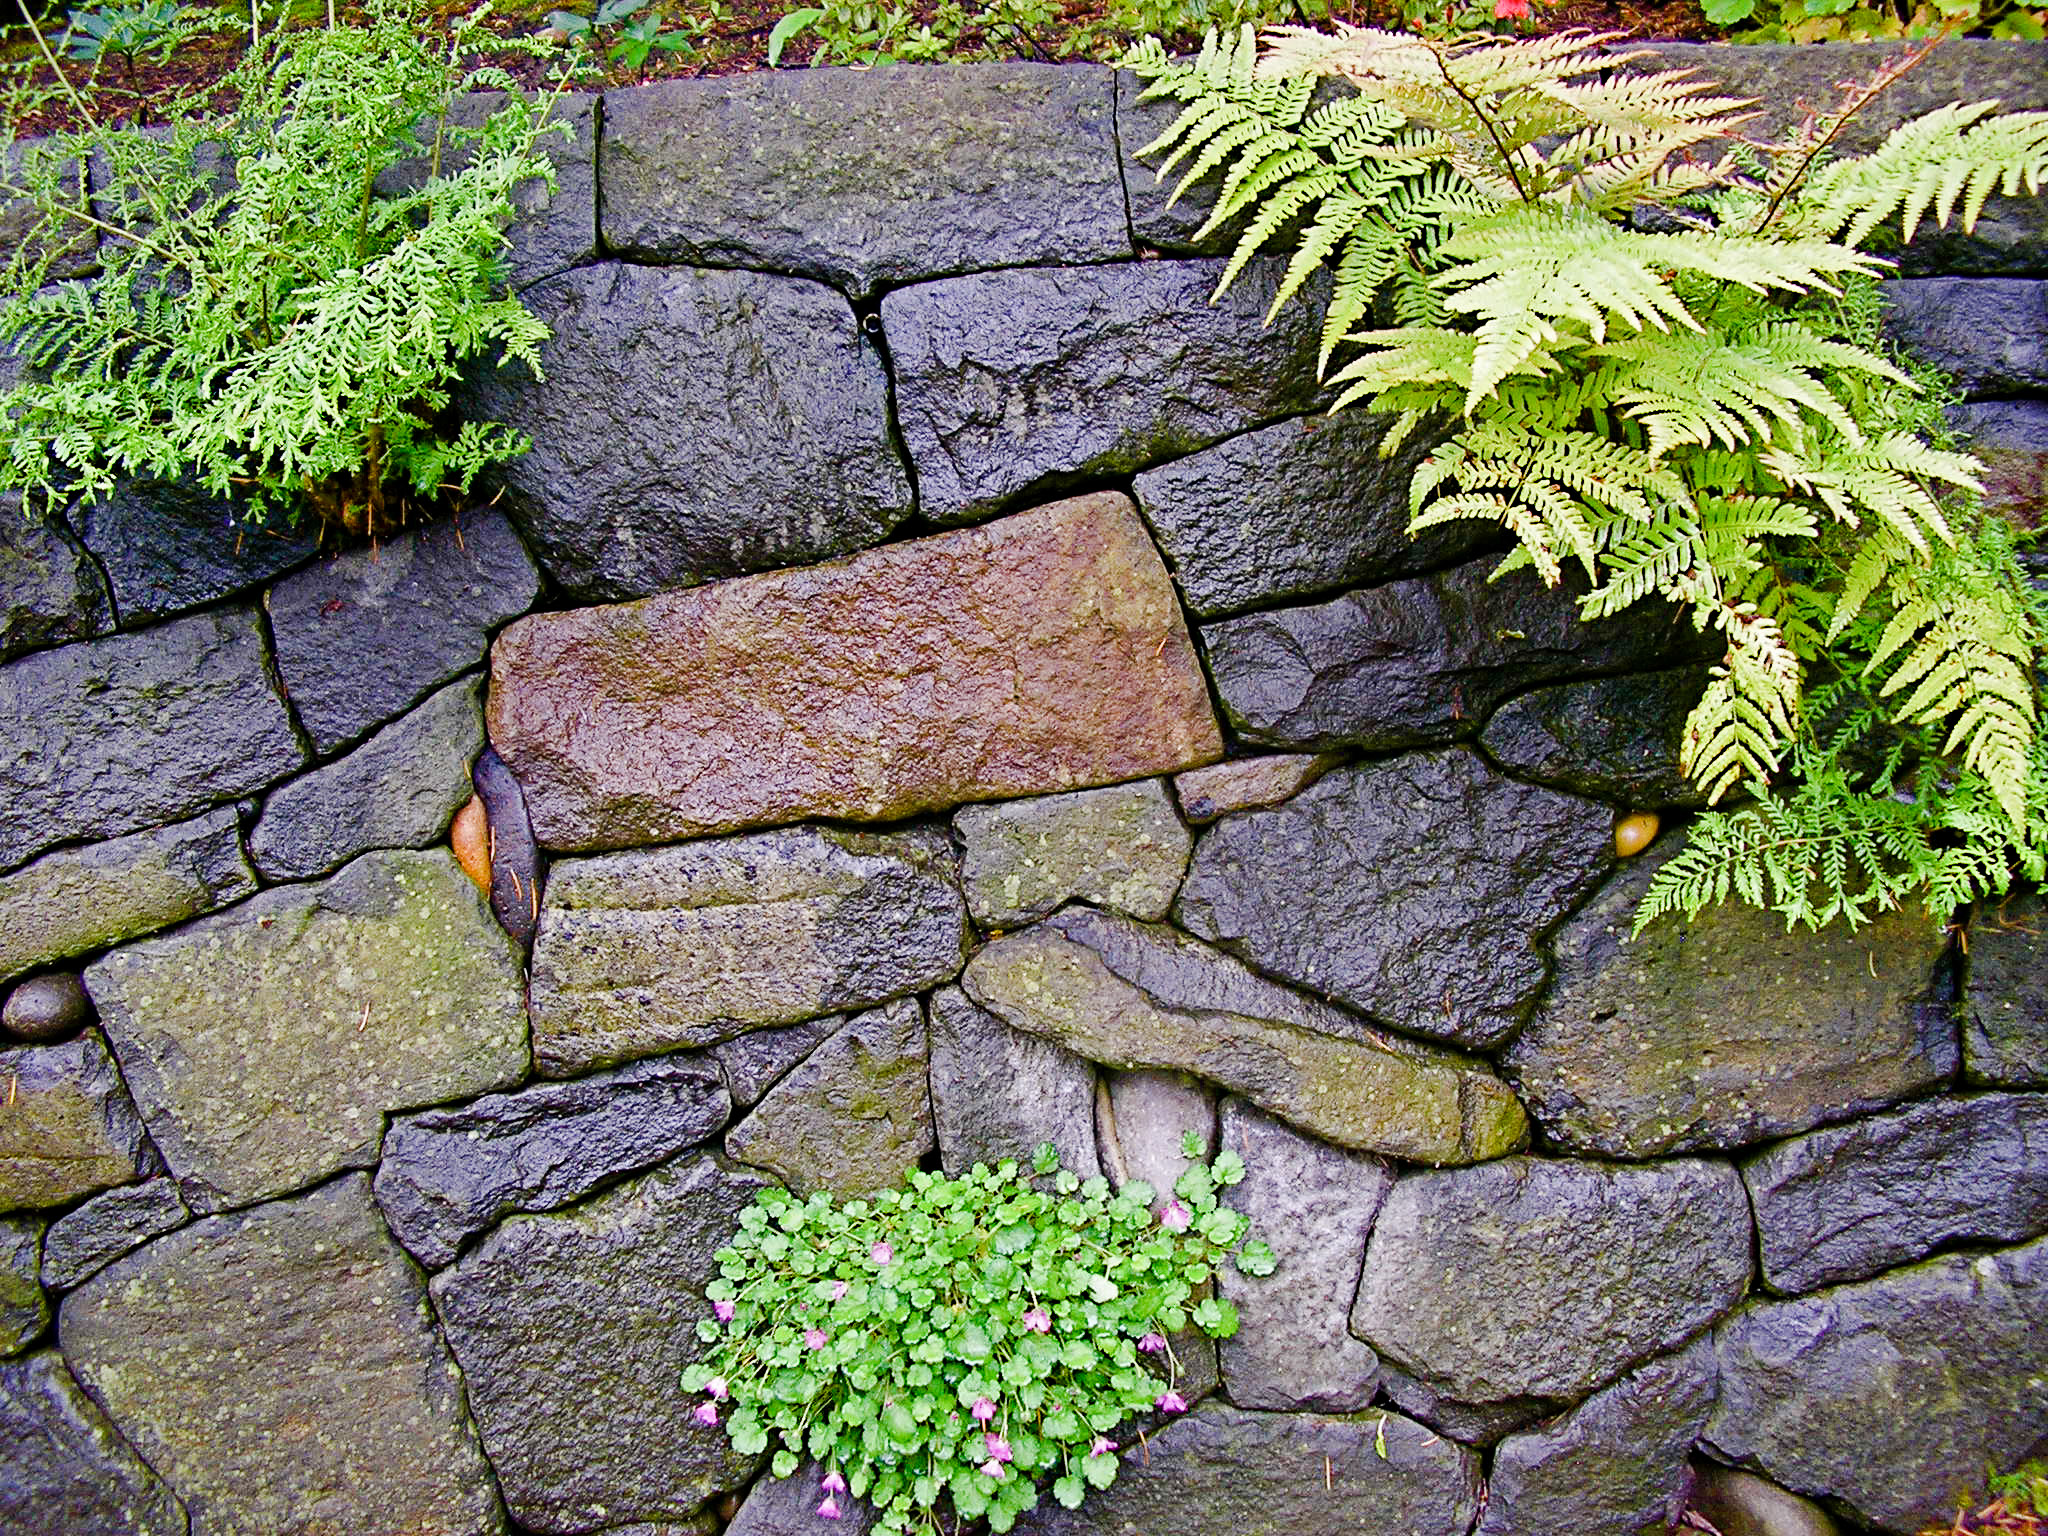 Eric Contey Stonework – Wall detail at the Rhododendron Gardens, Portland, OR